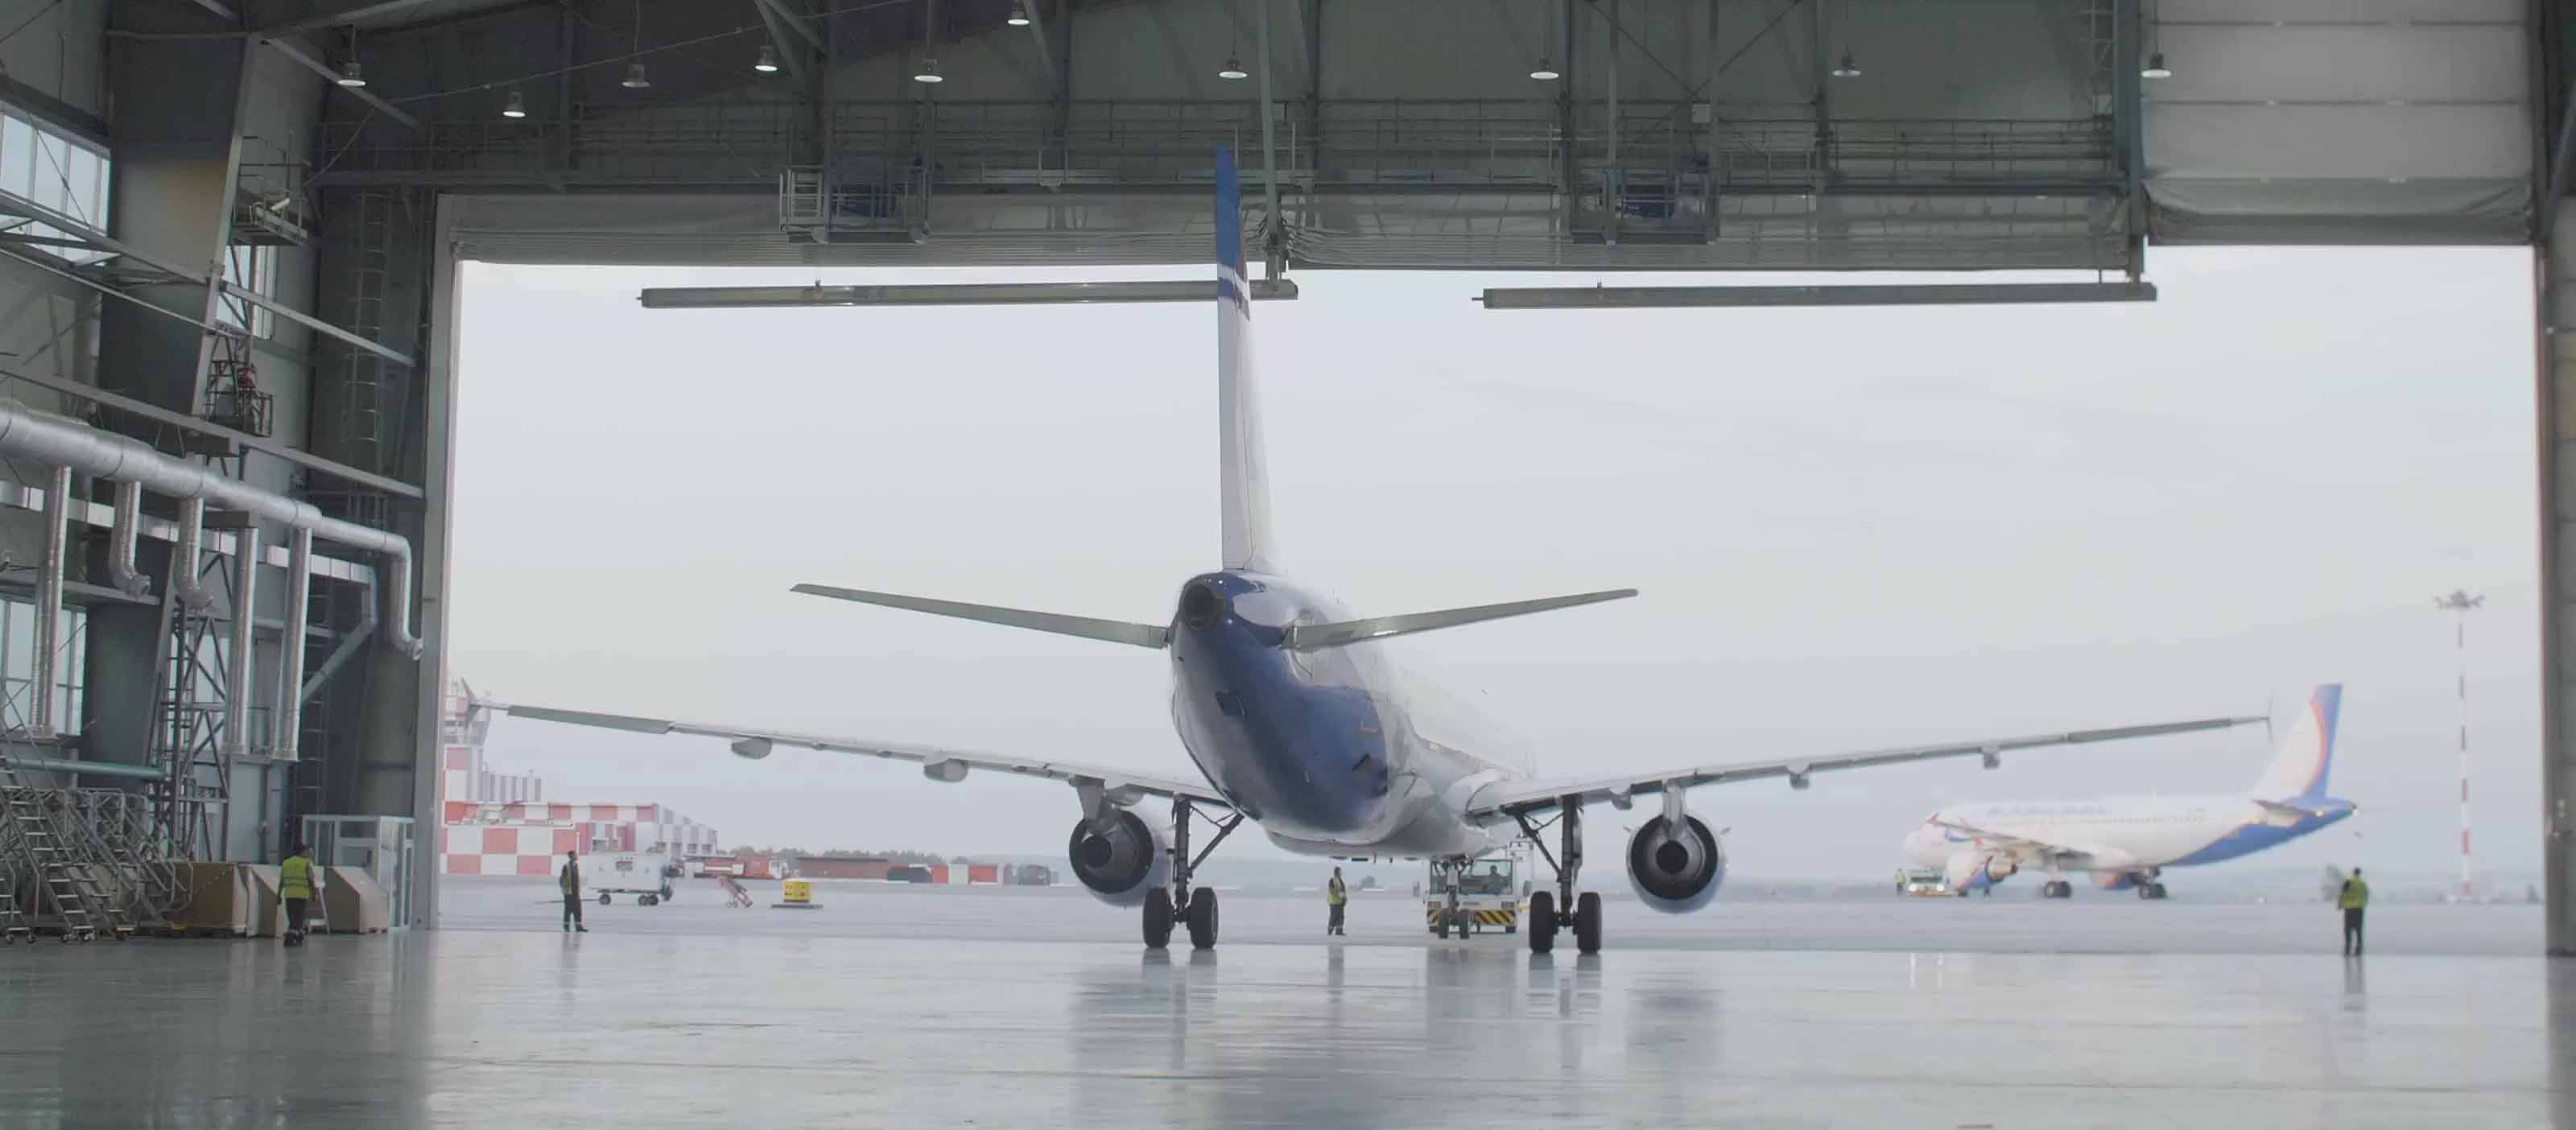 Return to flight with GE Digital Aviation software for Airlines preparedness